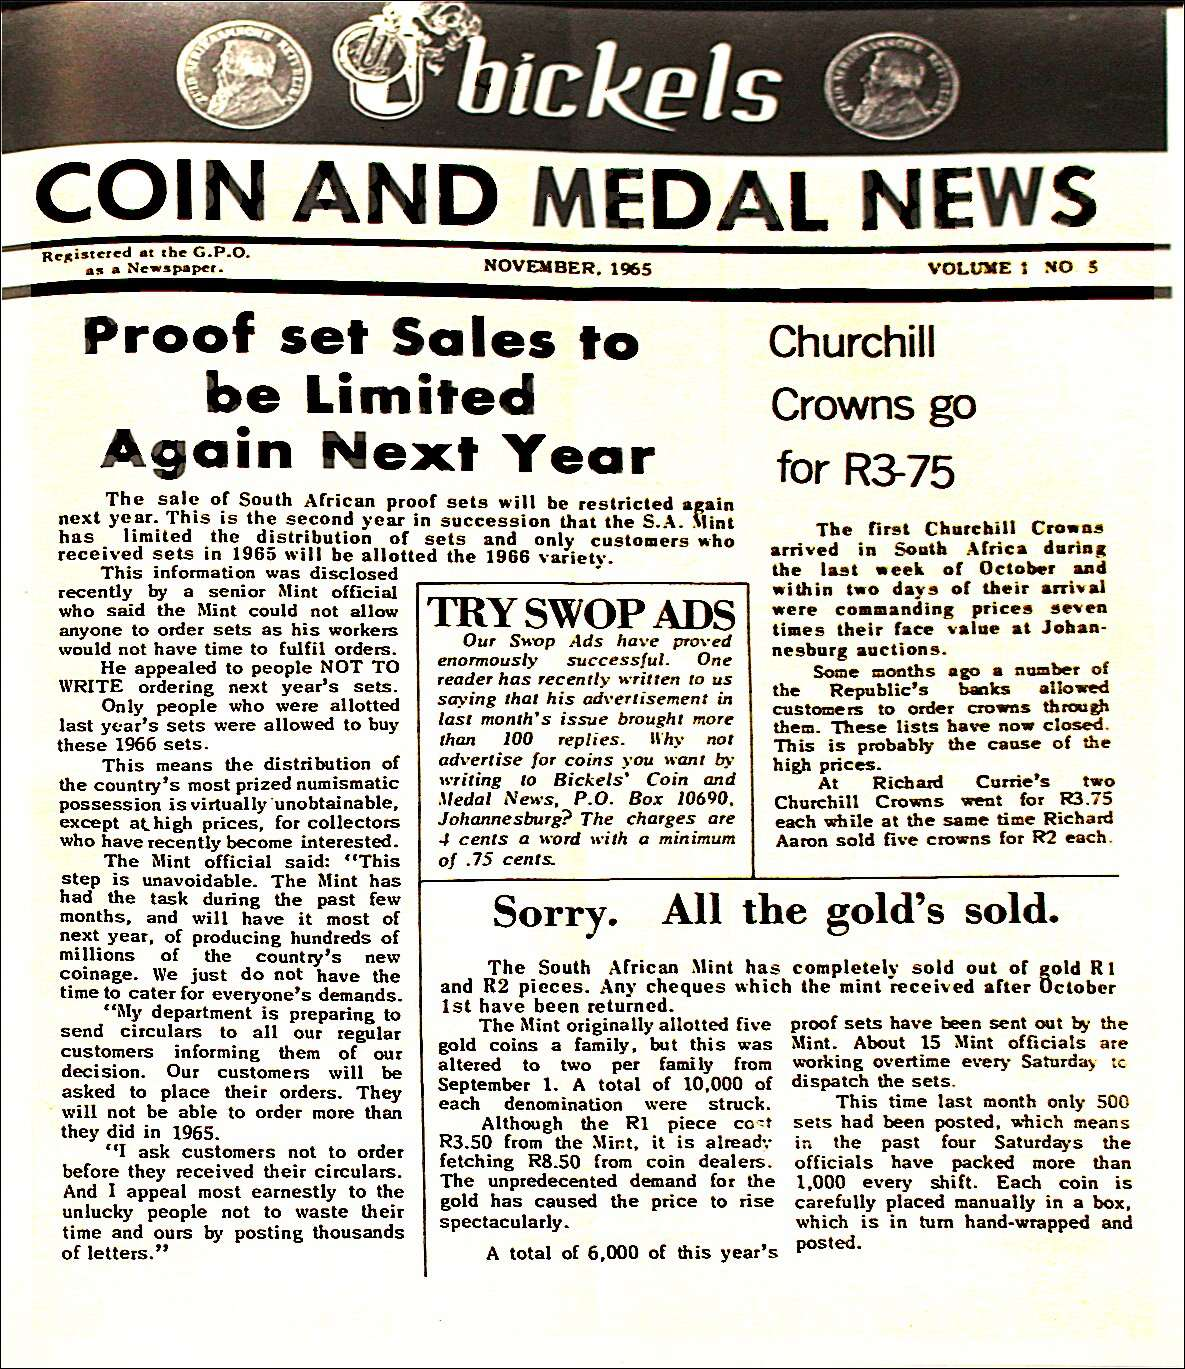 Bickels Coin & Medal News November 1965 Vol 1 No 5